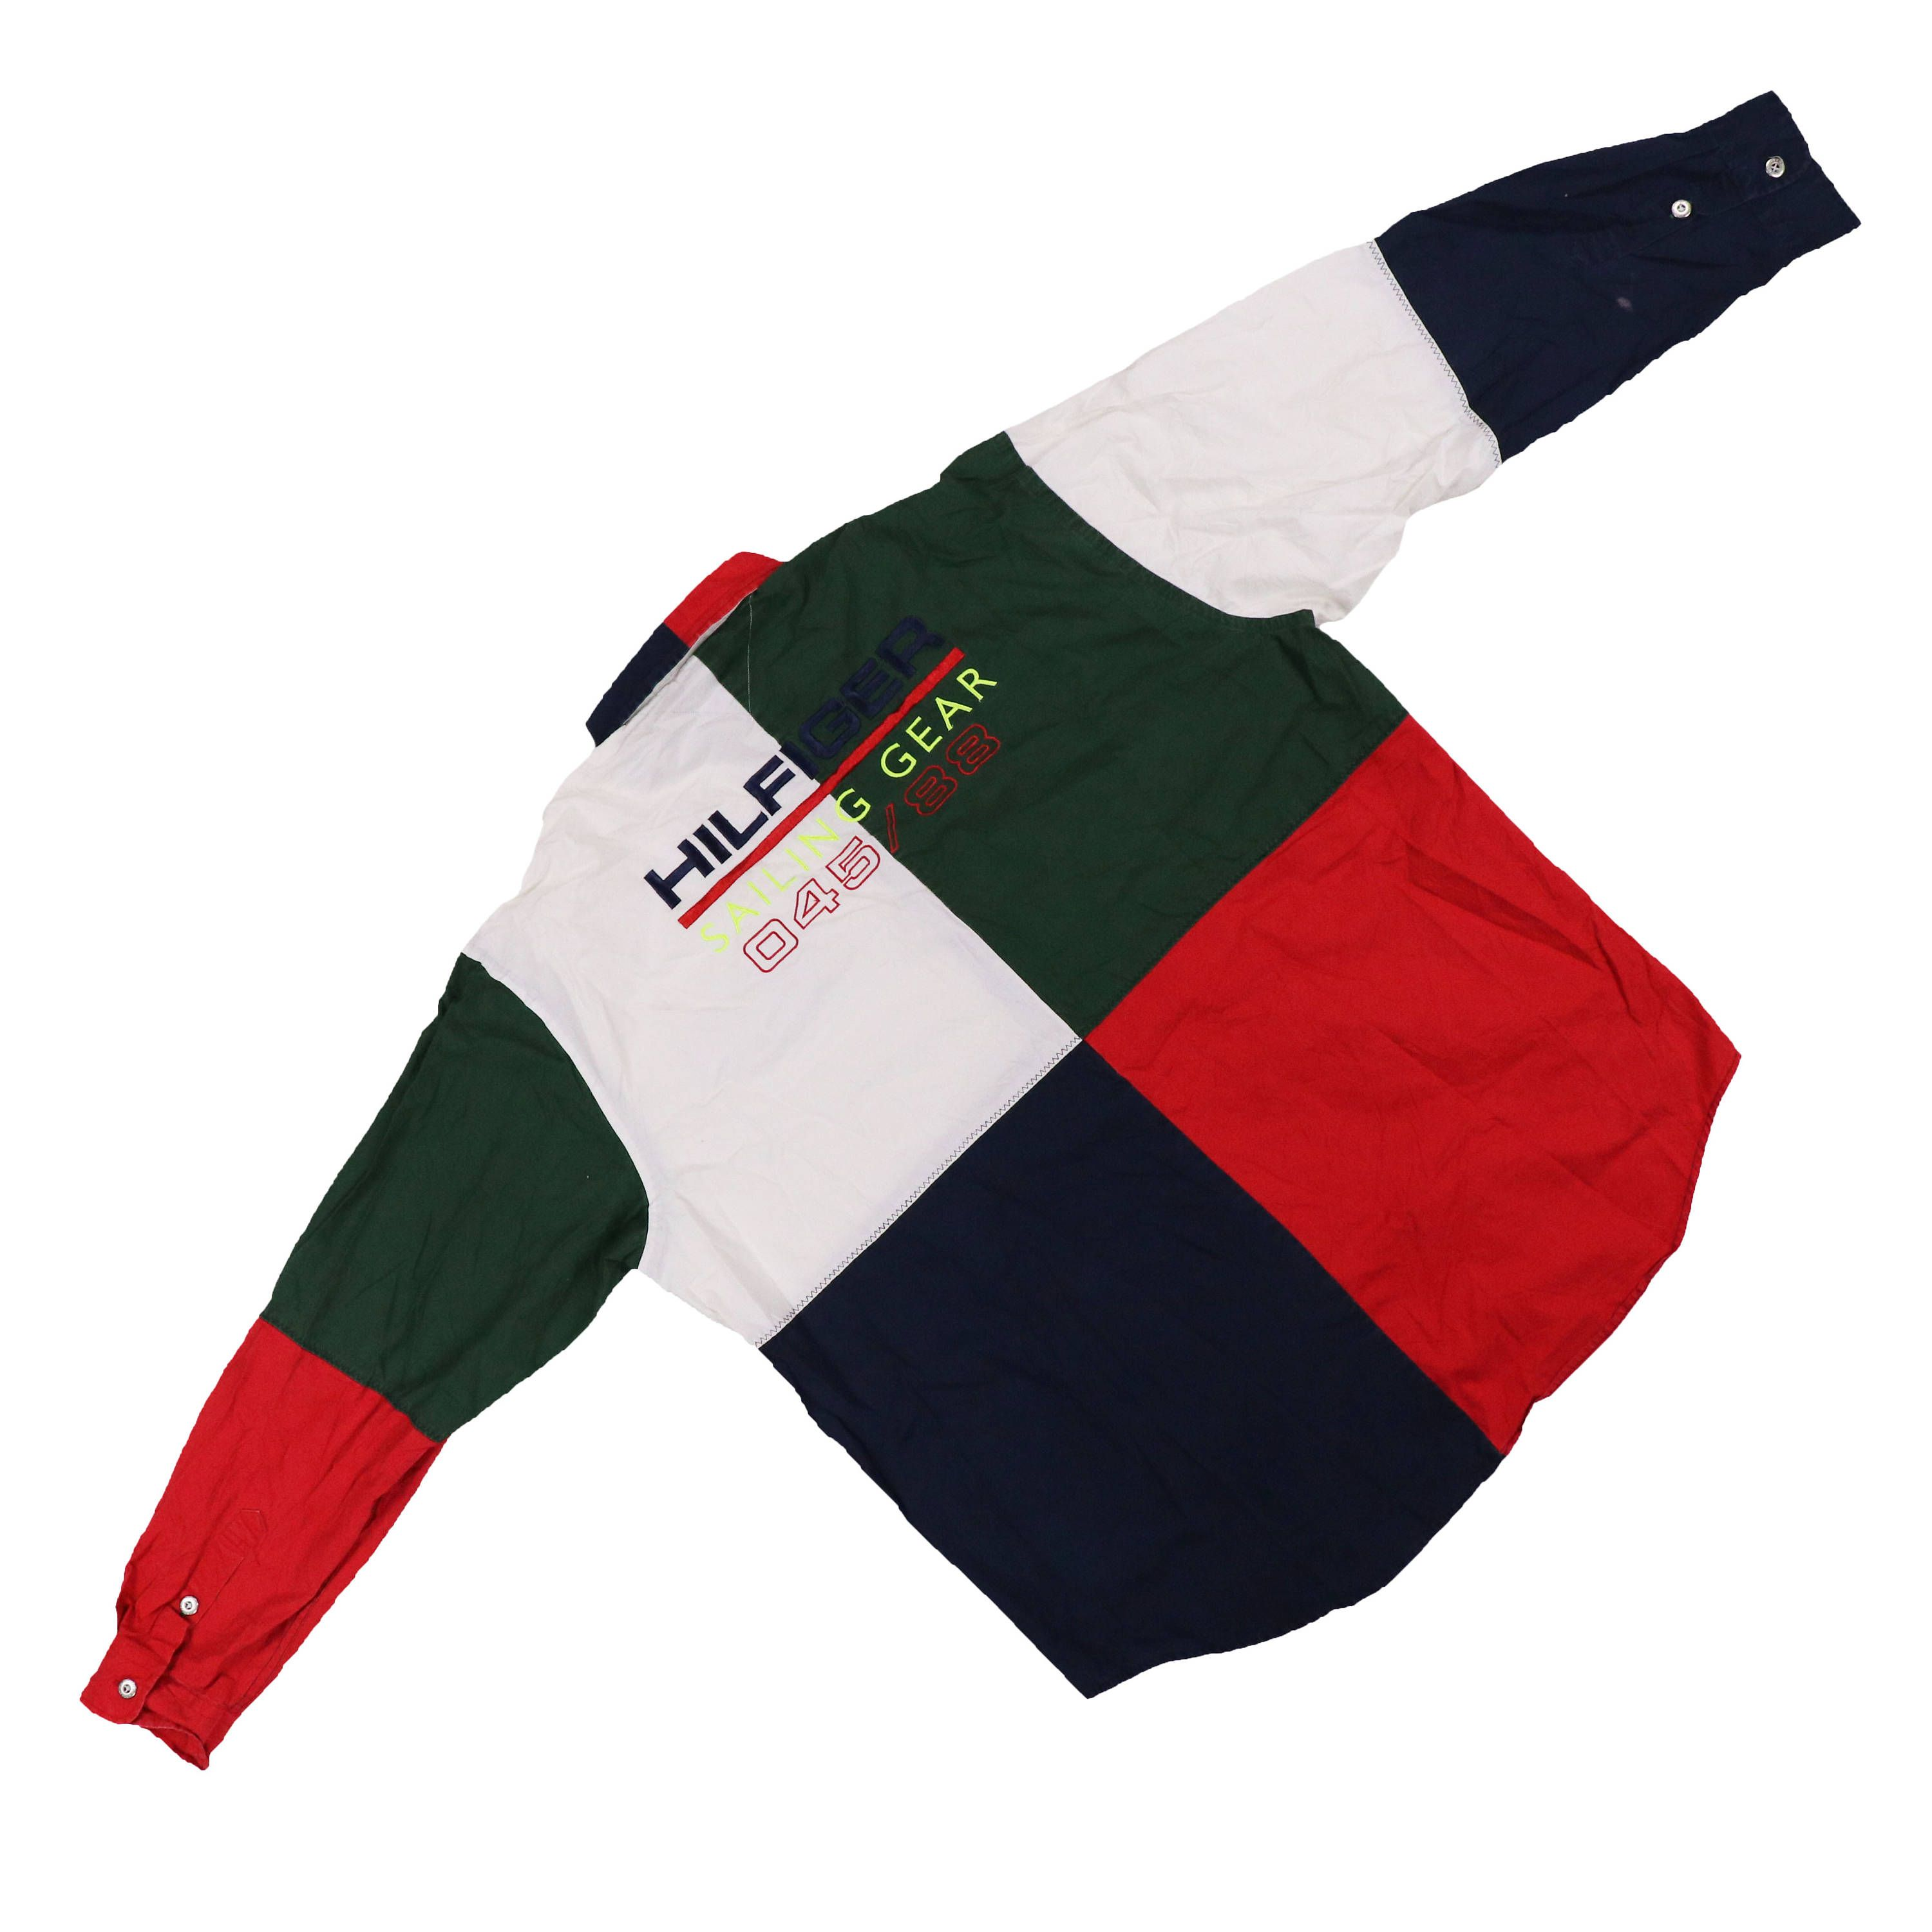 5ab87d78b Vintage 90s Tommy Hilfiger Sailing Gear Color block Shirt by HITZSHOP on  Etsy